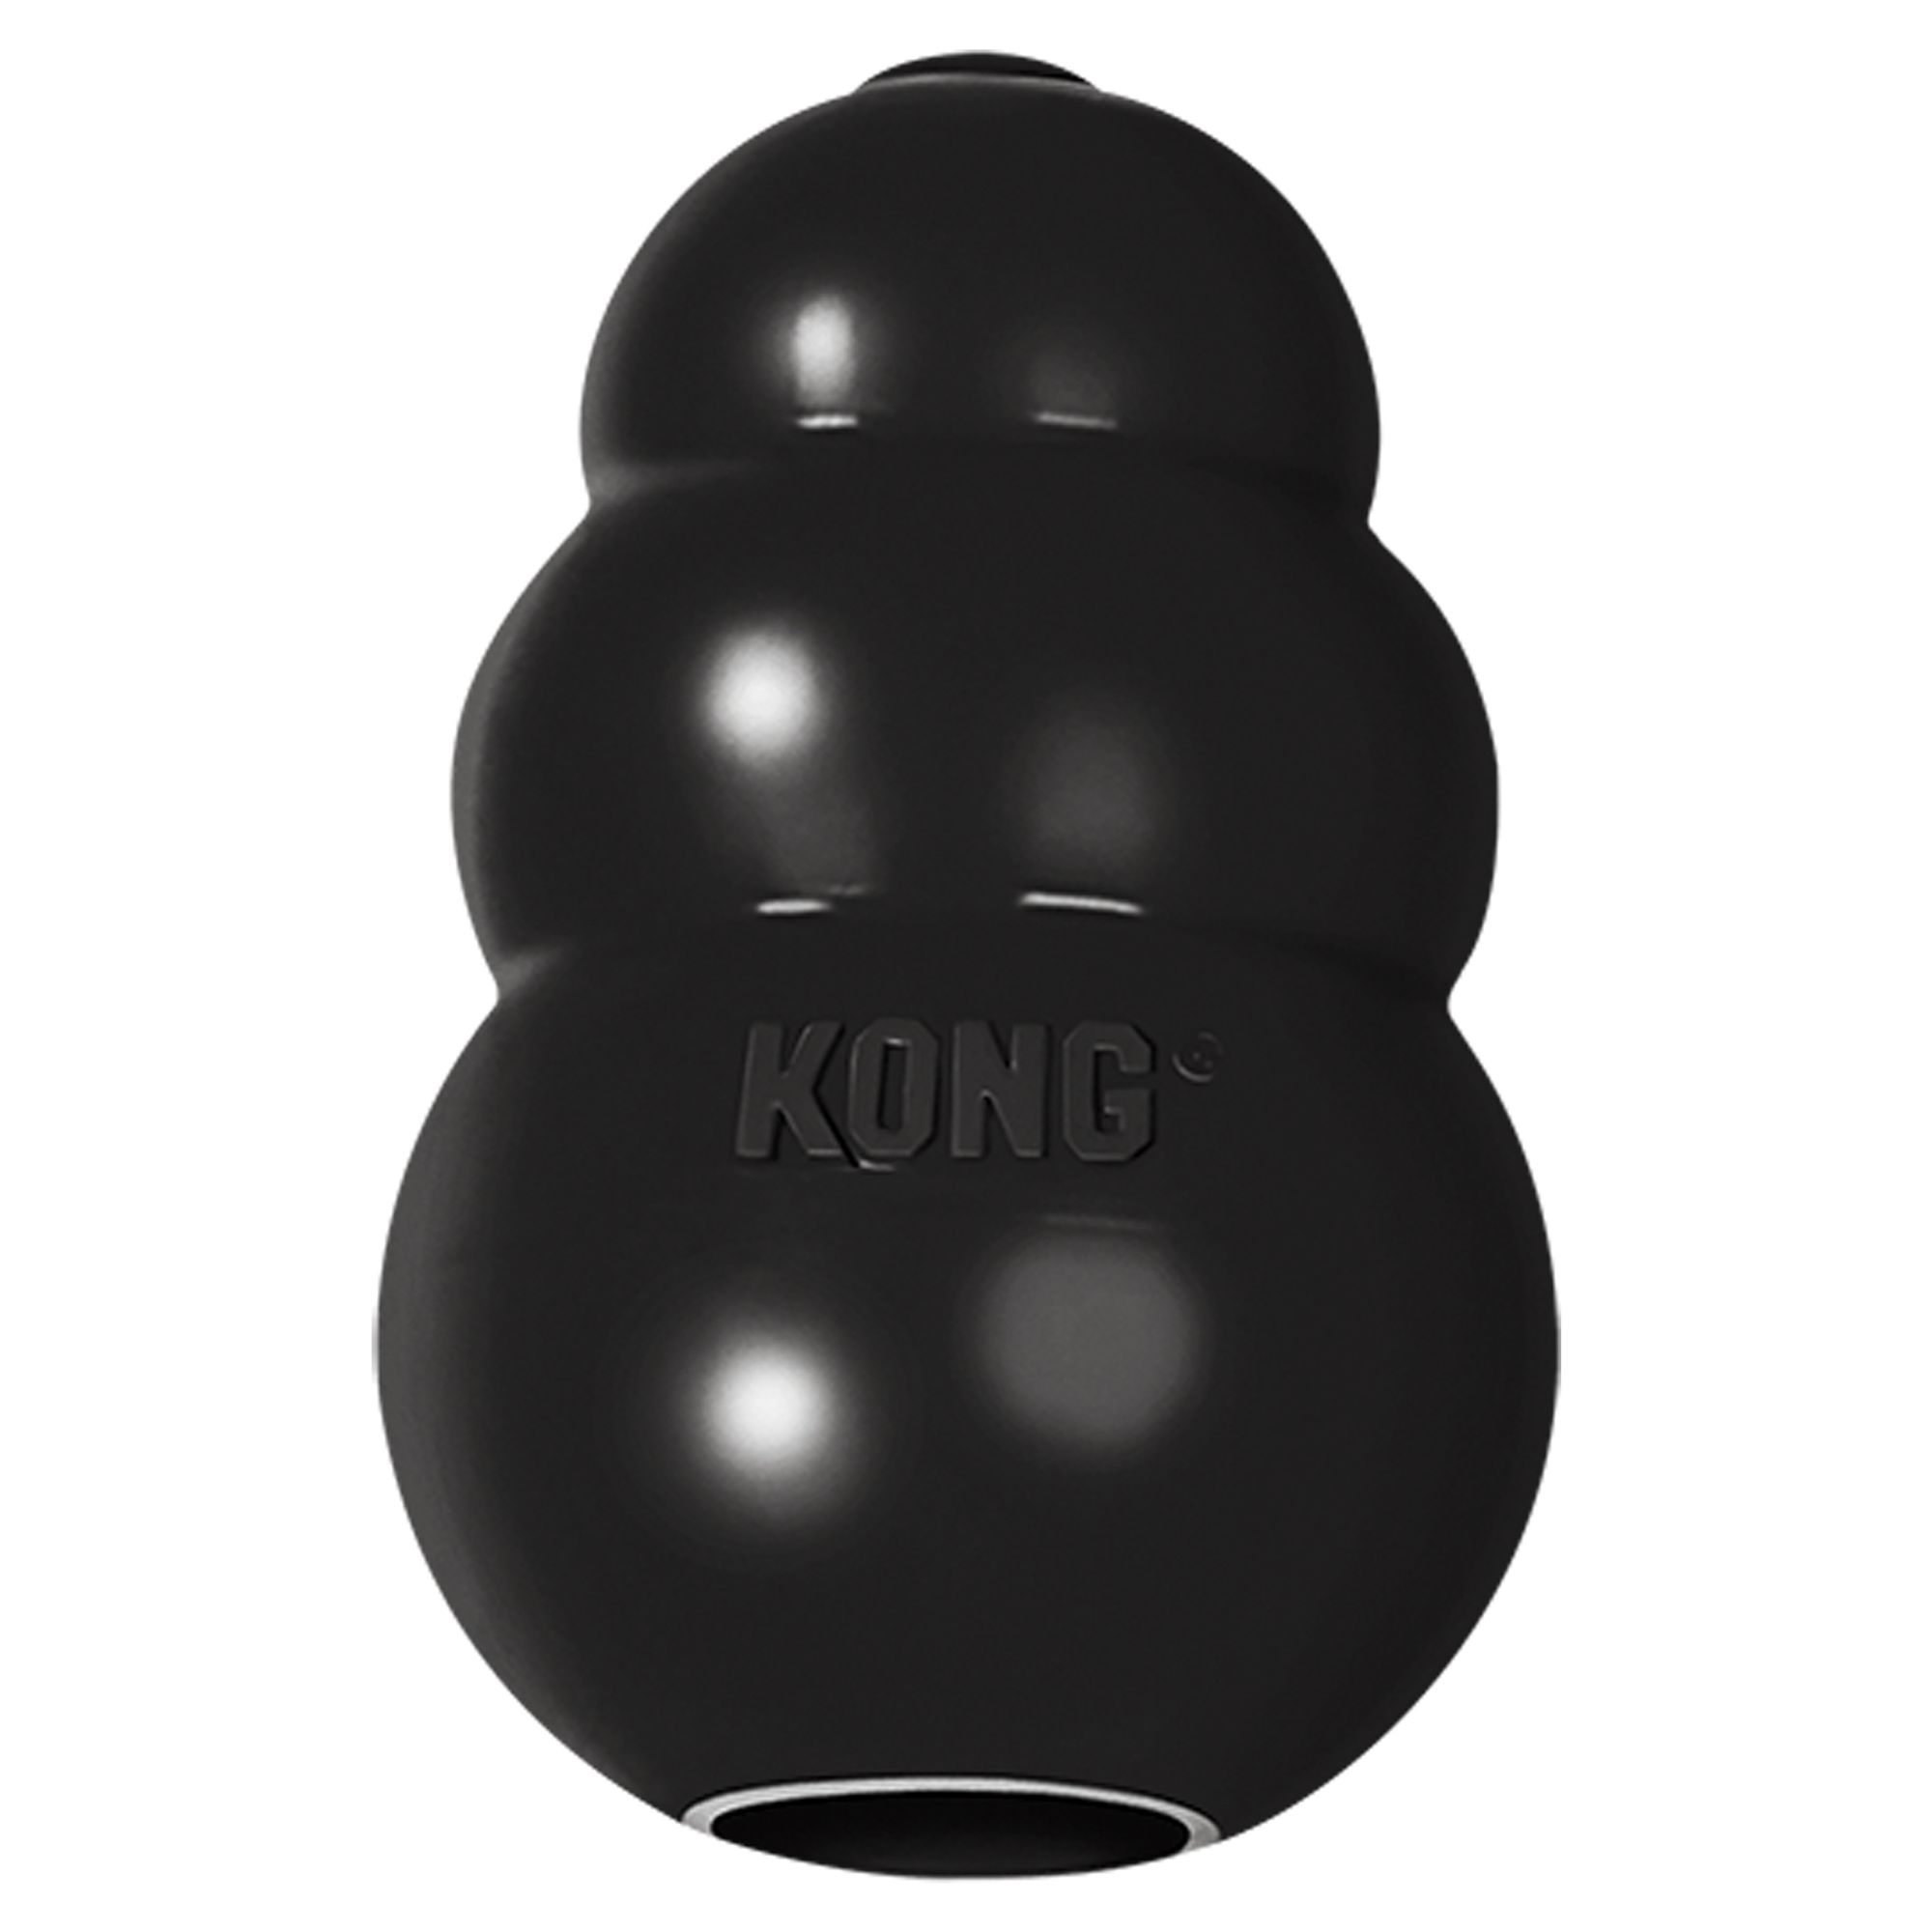 Kong Extreme Dog Toy -Treat Dispensing size: Medium, Black 5121239